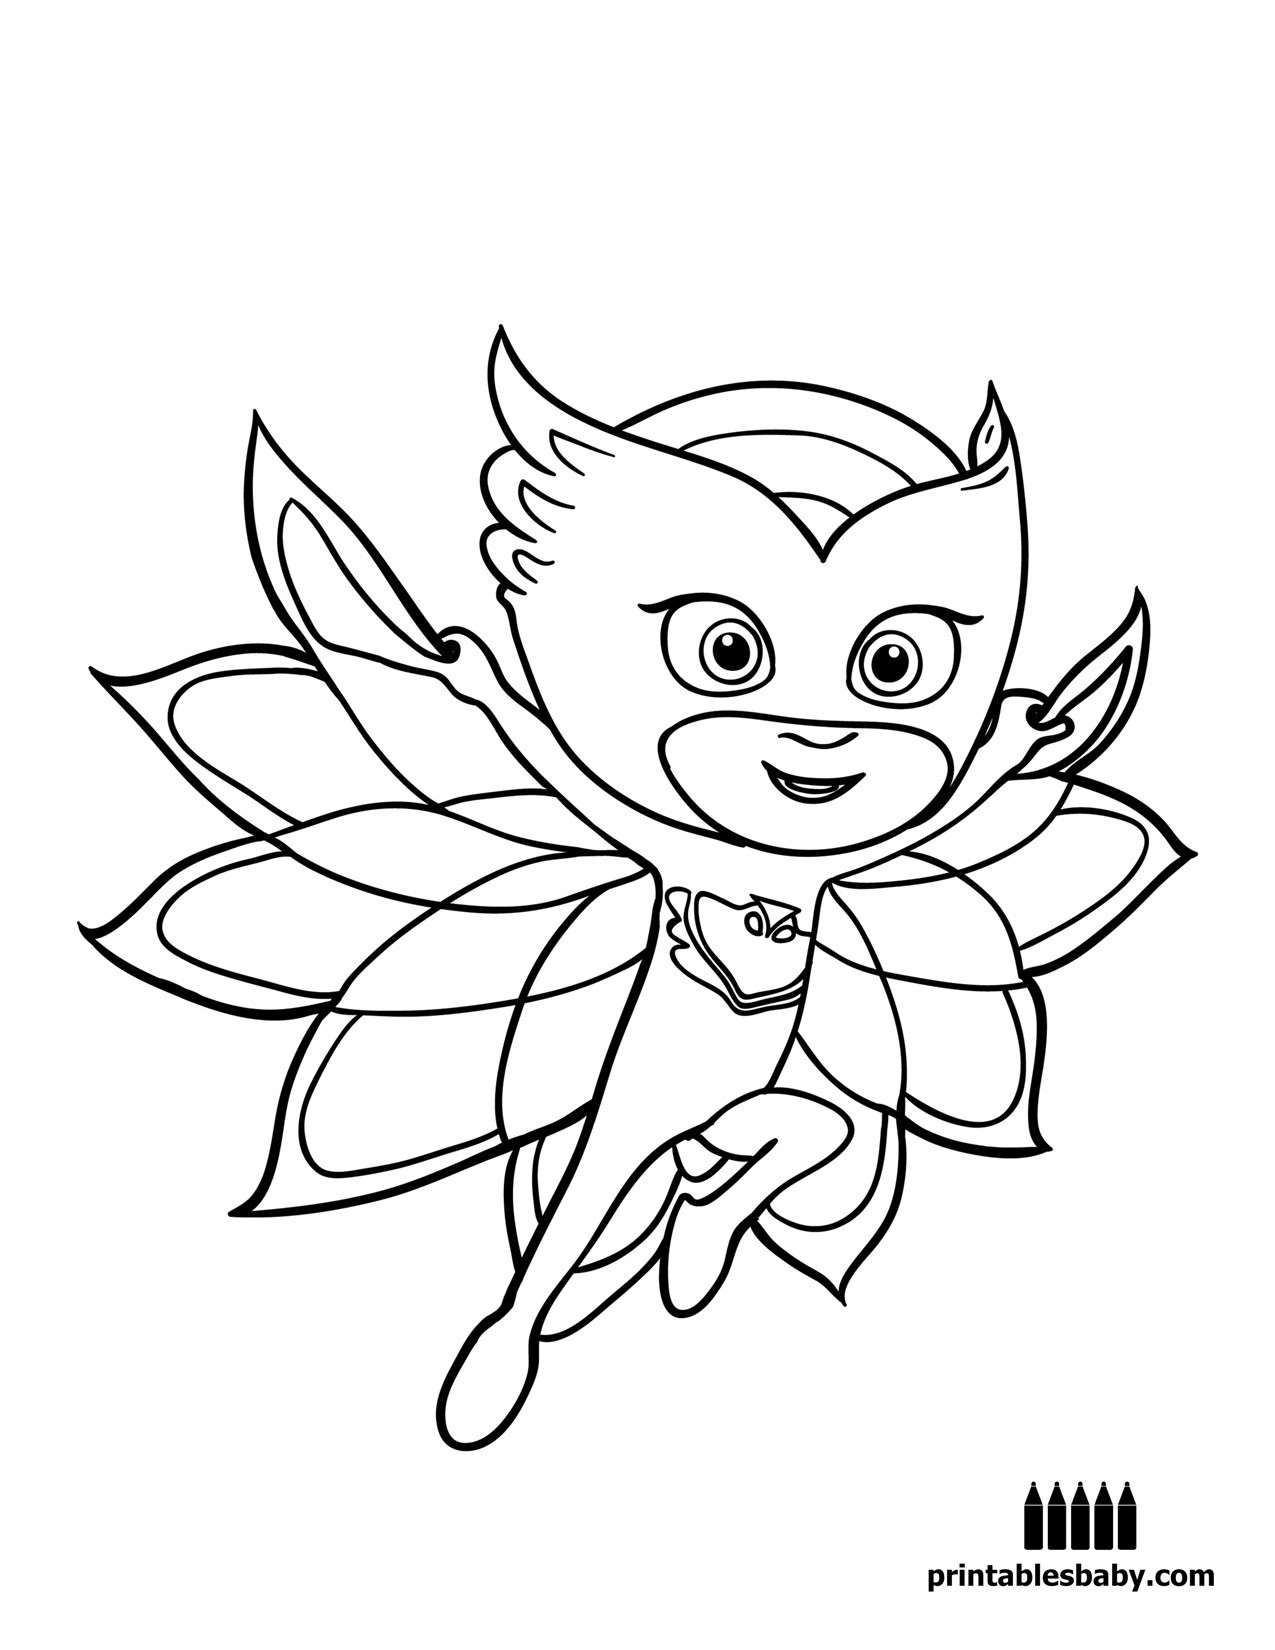 pj-masks-gecko-coloring-pages-fresh-pj-masks-coloring-pages-free-printable-new-pj-masks-gecko-coloring-pages-fresh-colour-in-gekko-from-pj-masks-of-pj-masks-gecko-coloring-pages-fresh-pj-masks-colorin-1